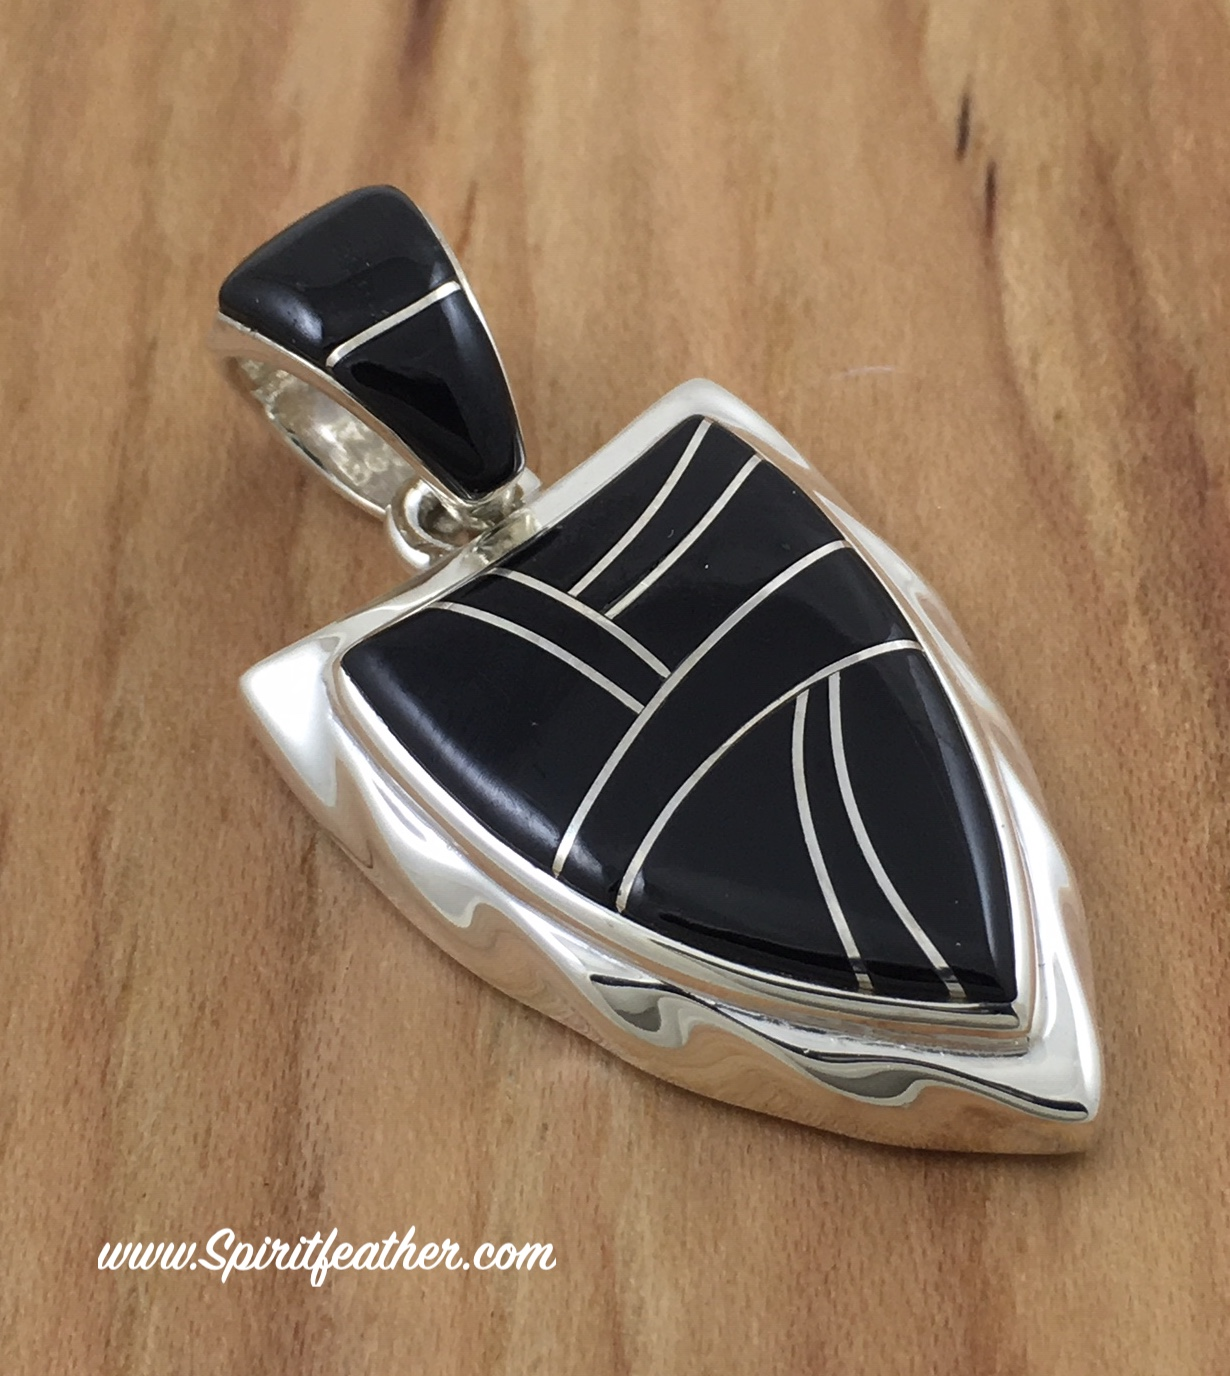 Black Jade and Sterling Silver Arrowhead Pendant 2-sided